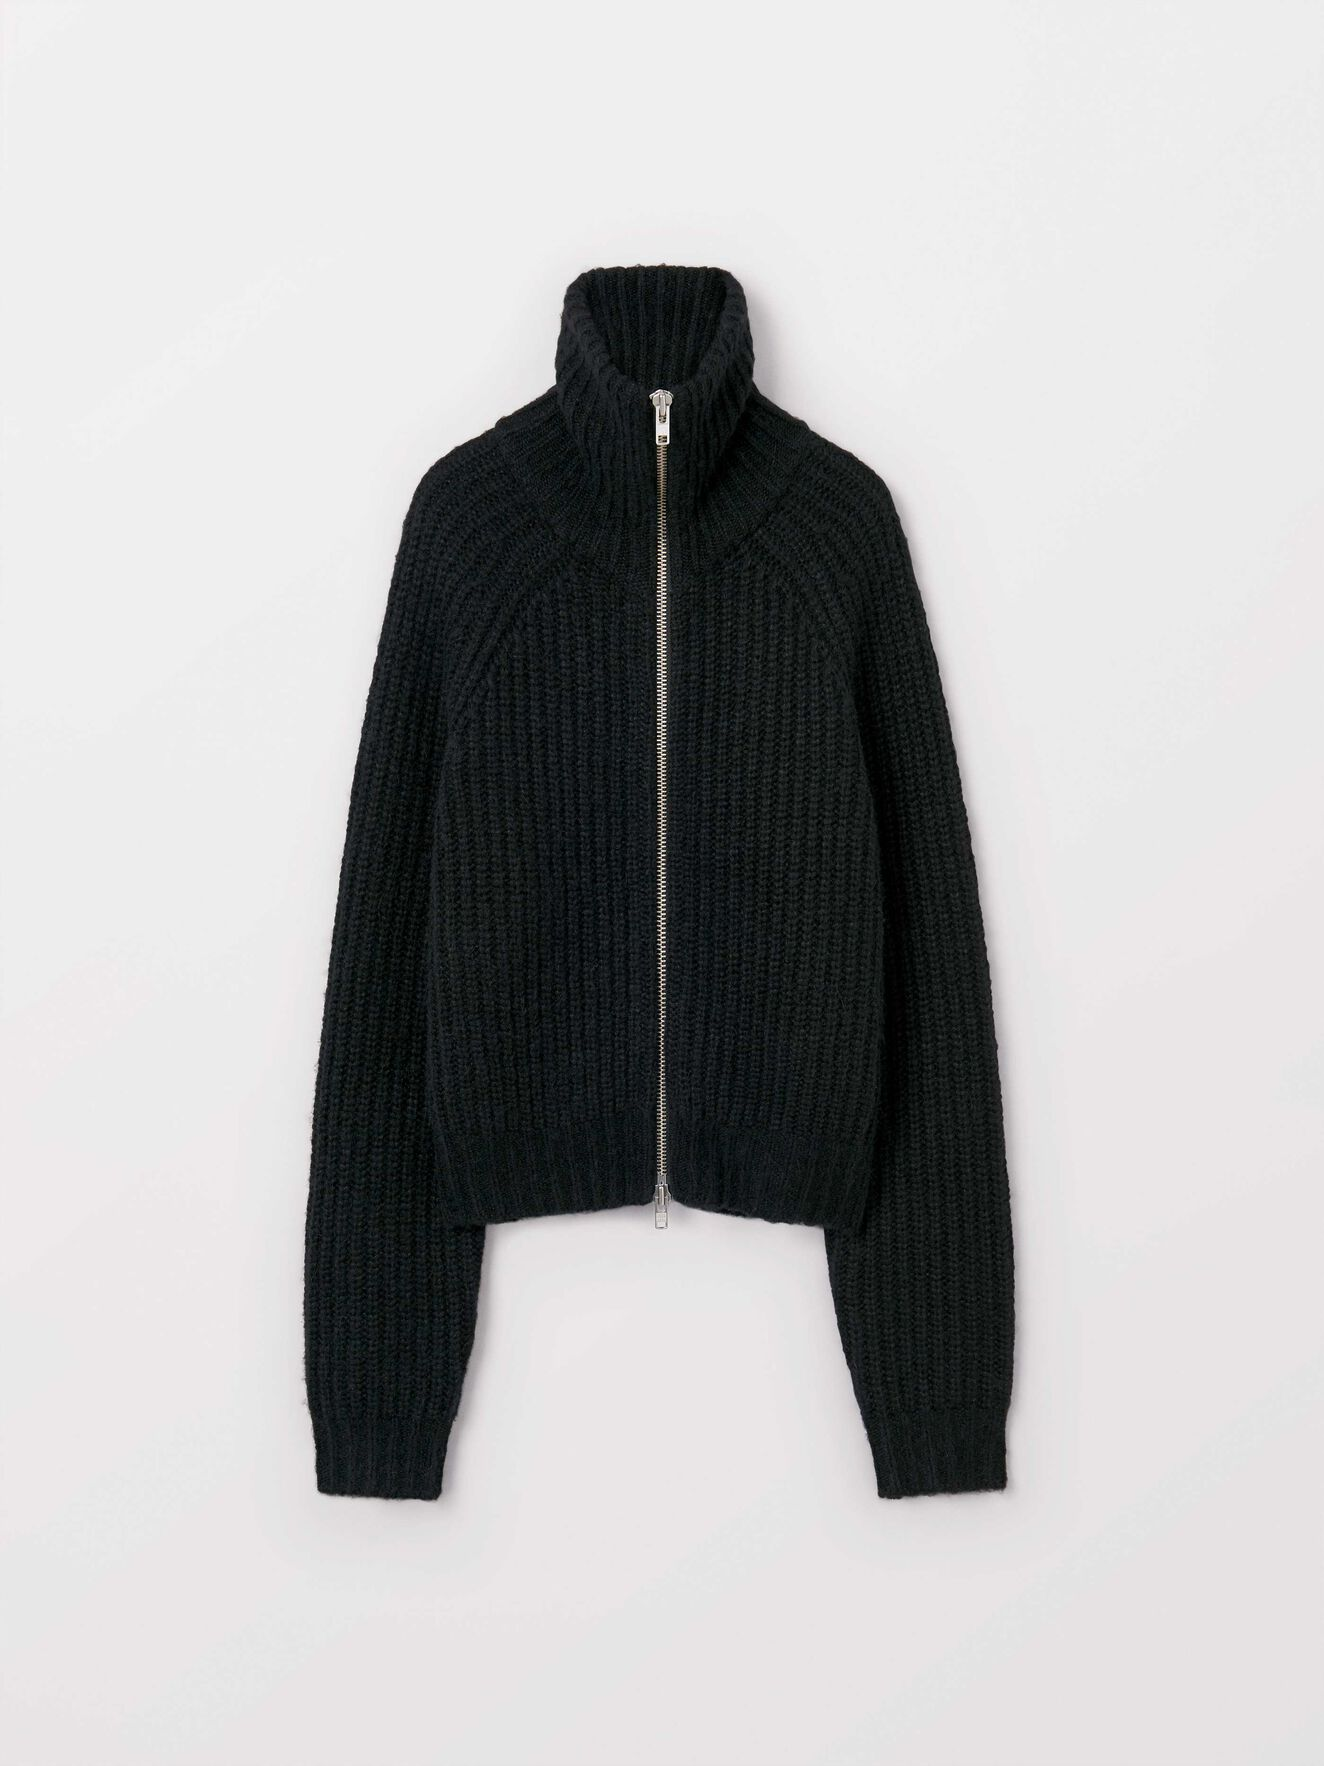 Cabella Cardigan in Midnight Black from Tiger of Sweden